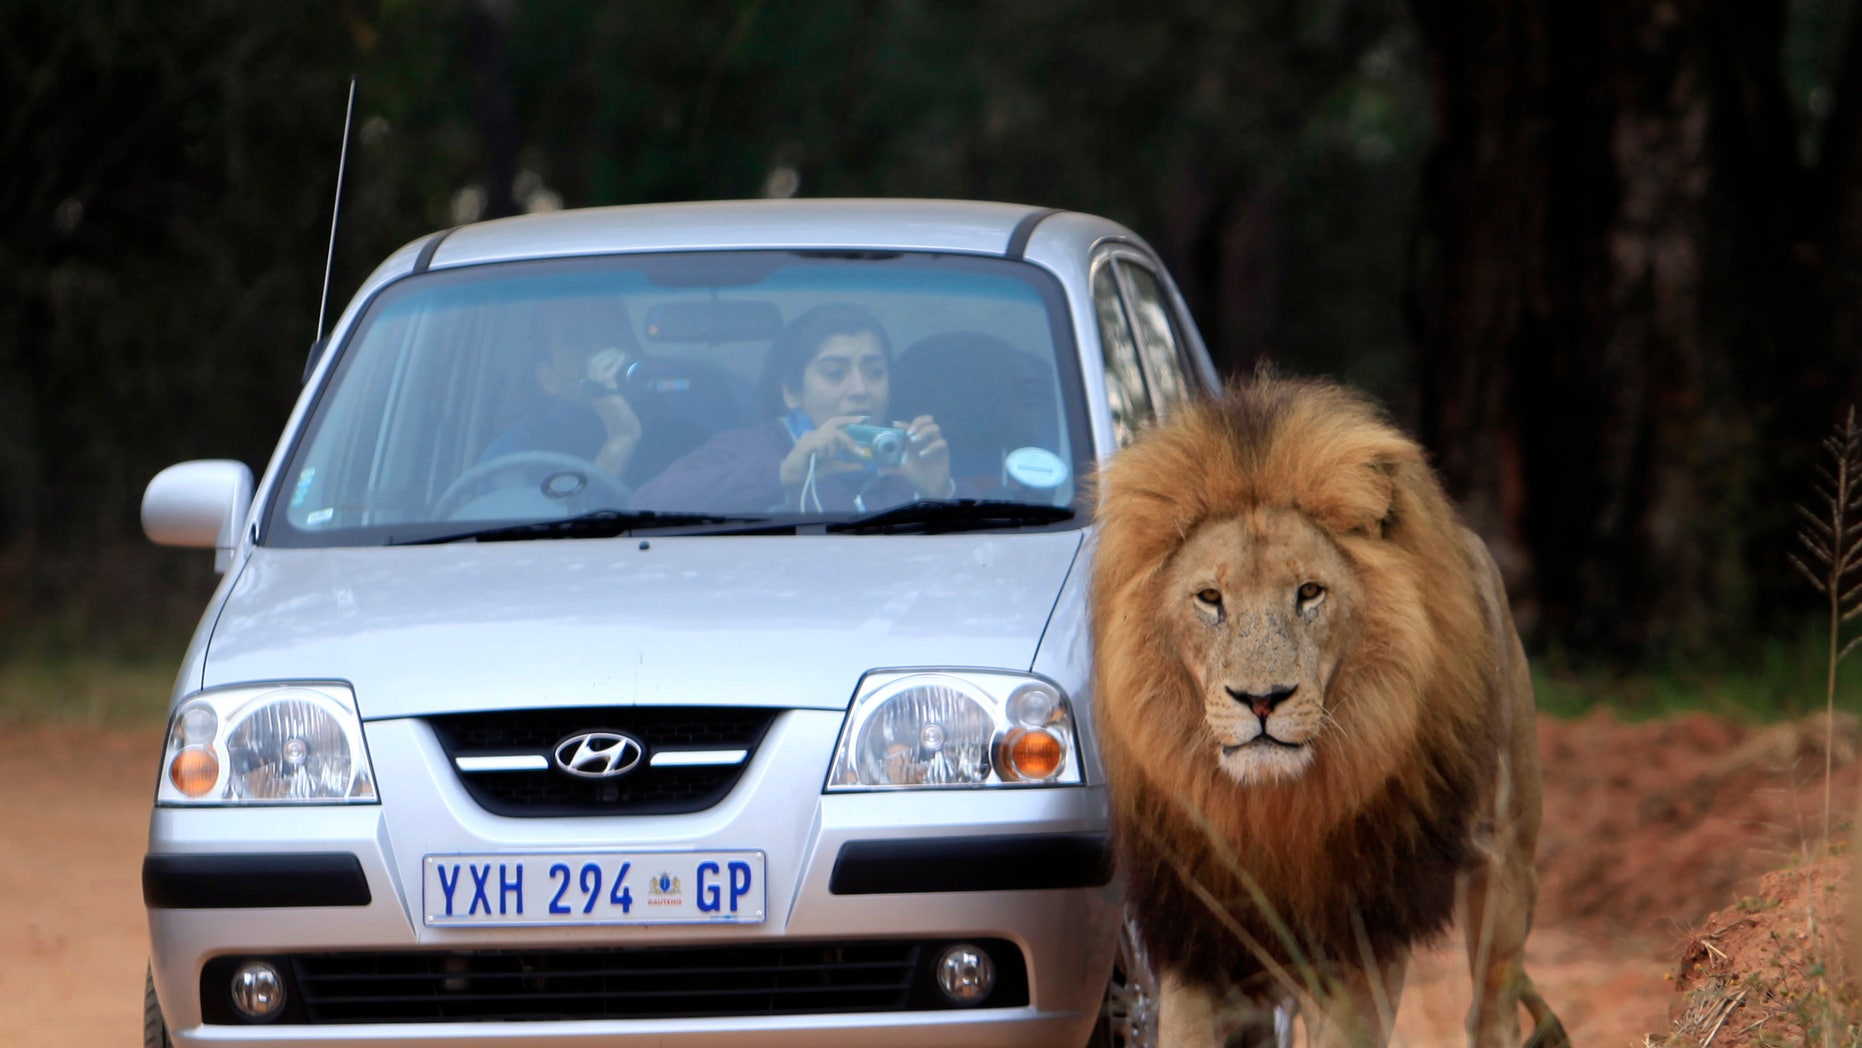 A male lion passes next to a vehicle with Argentinian supporters visiting the Lions Park near Johannesburg, June 10, 2010. REUTERS/Radu Sigheti (SOUTH AFRICA - Tags: IMAGES OF THE DAY ANIMALS SPORT SOCCER WORLD CUP) - RTR2EZJK